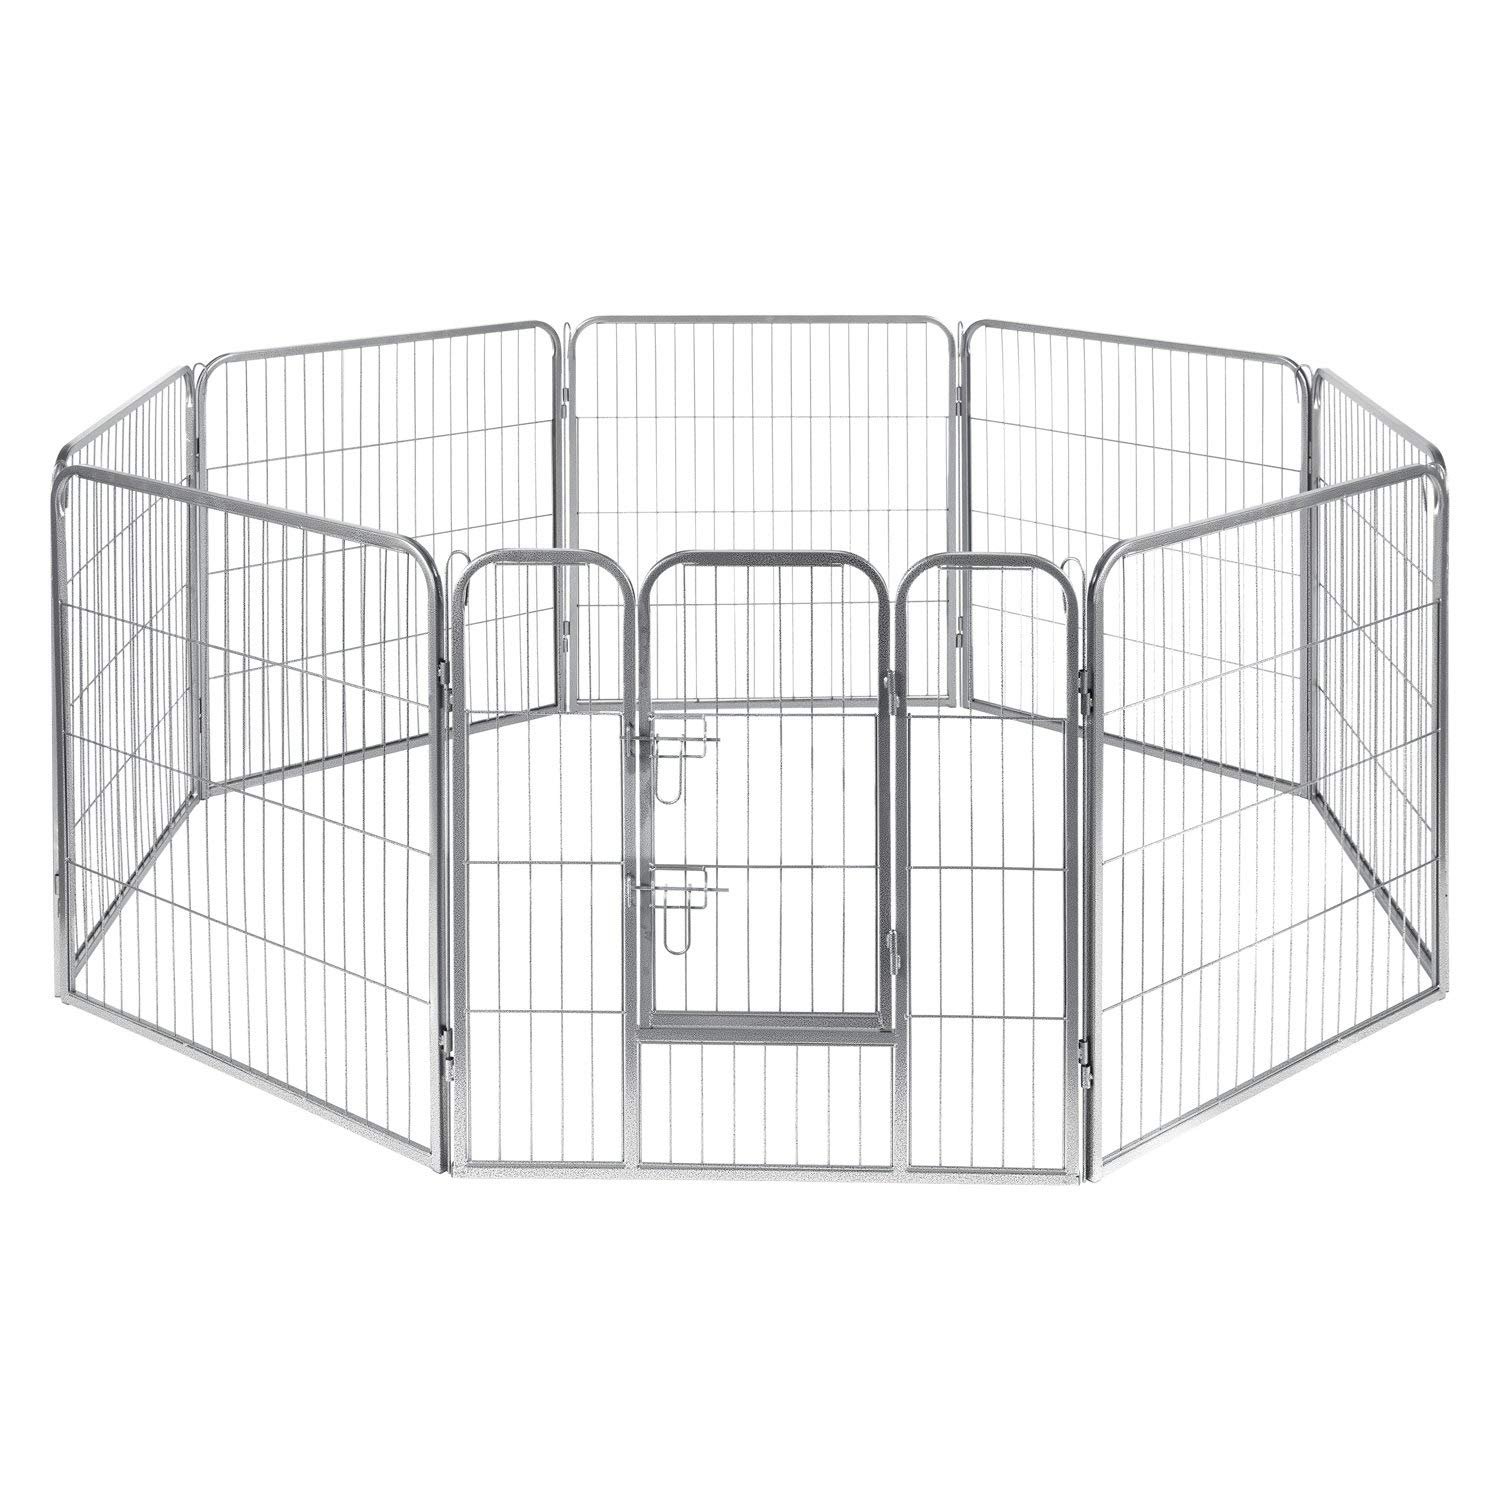 Pet Exercise Pen Tube Gate w/ Door - (8 Panel Playpen) Heavy Duty Folding Metal Out-Door Fence - 40'' Playpen by Paws & Pals